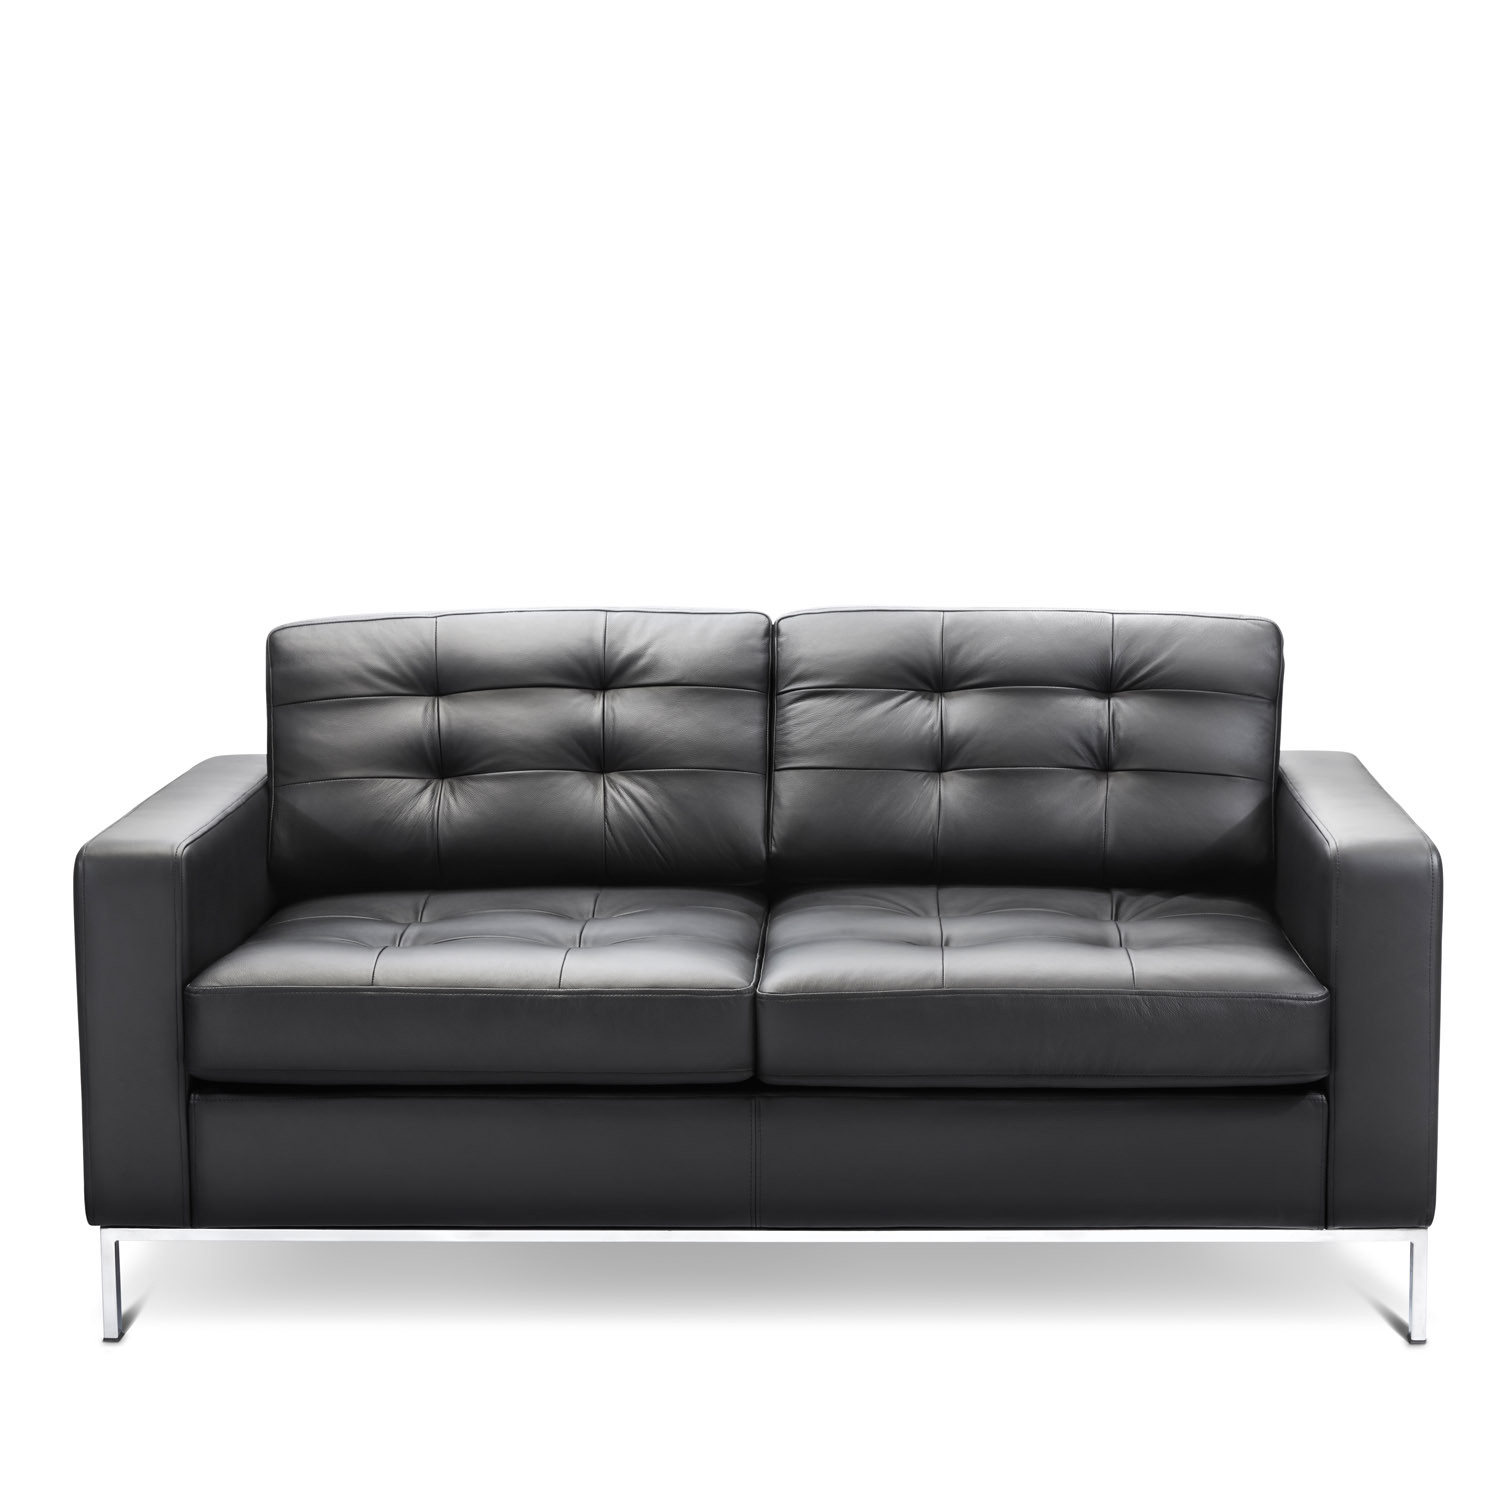 Check Executive Sofa Sck1a Business Leather Sofa Apres